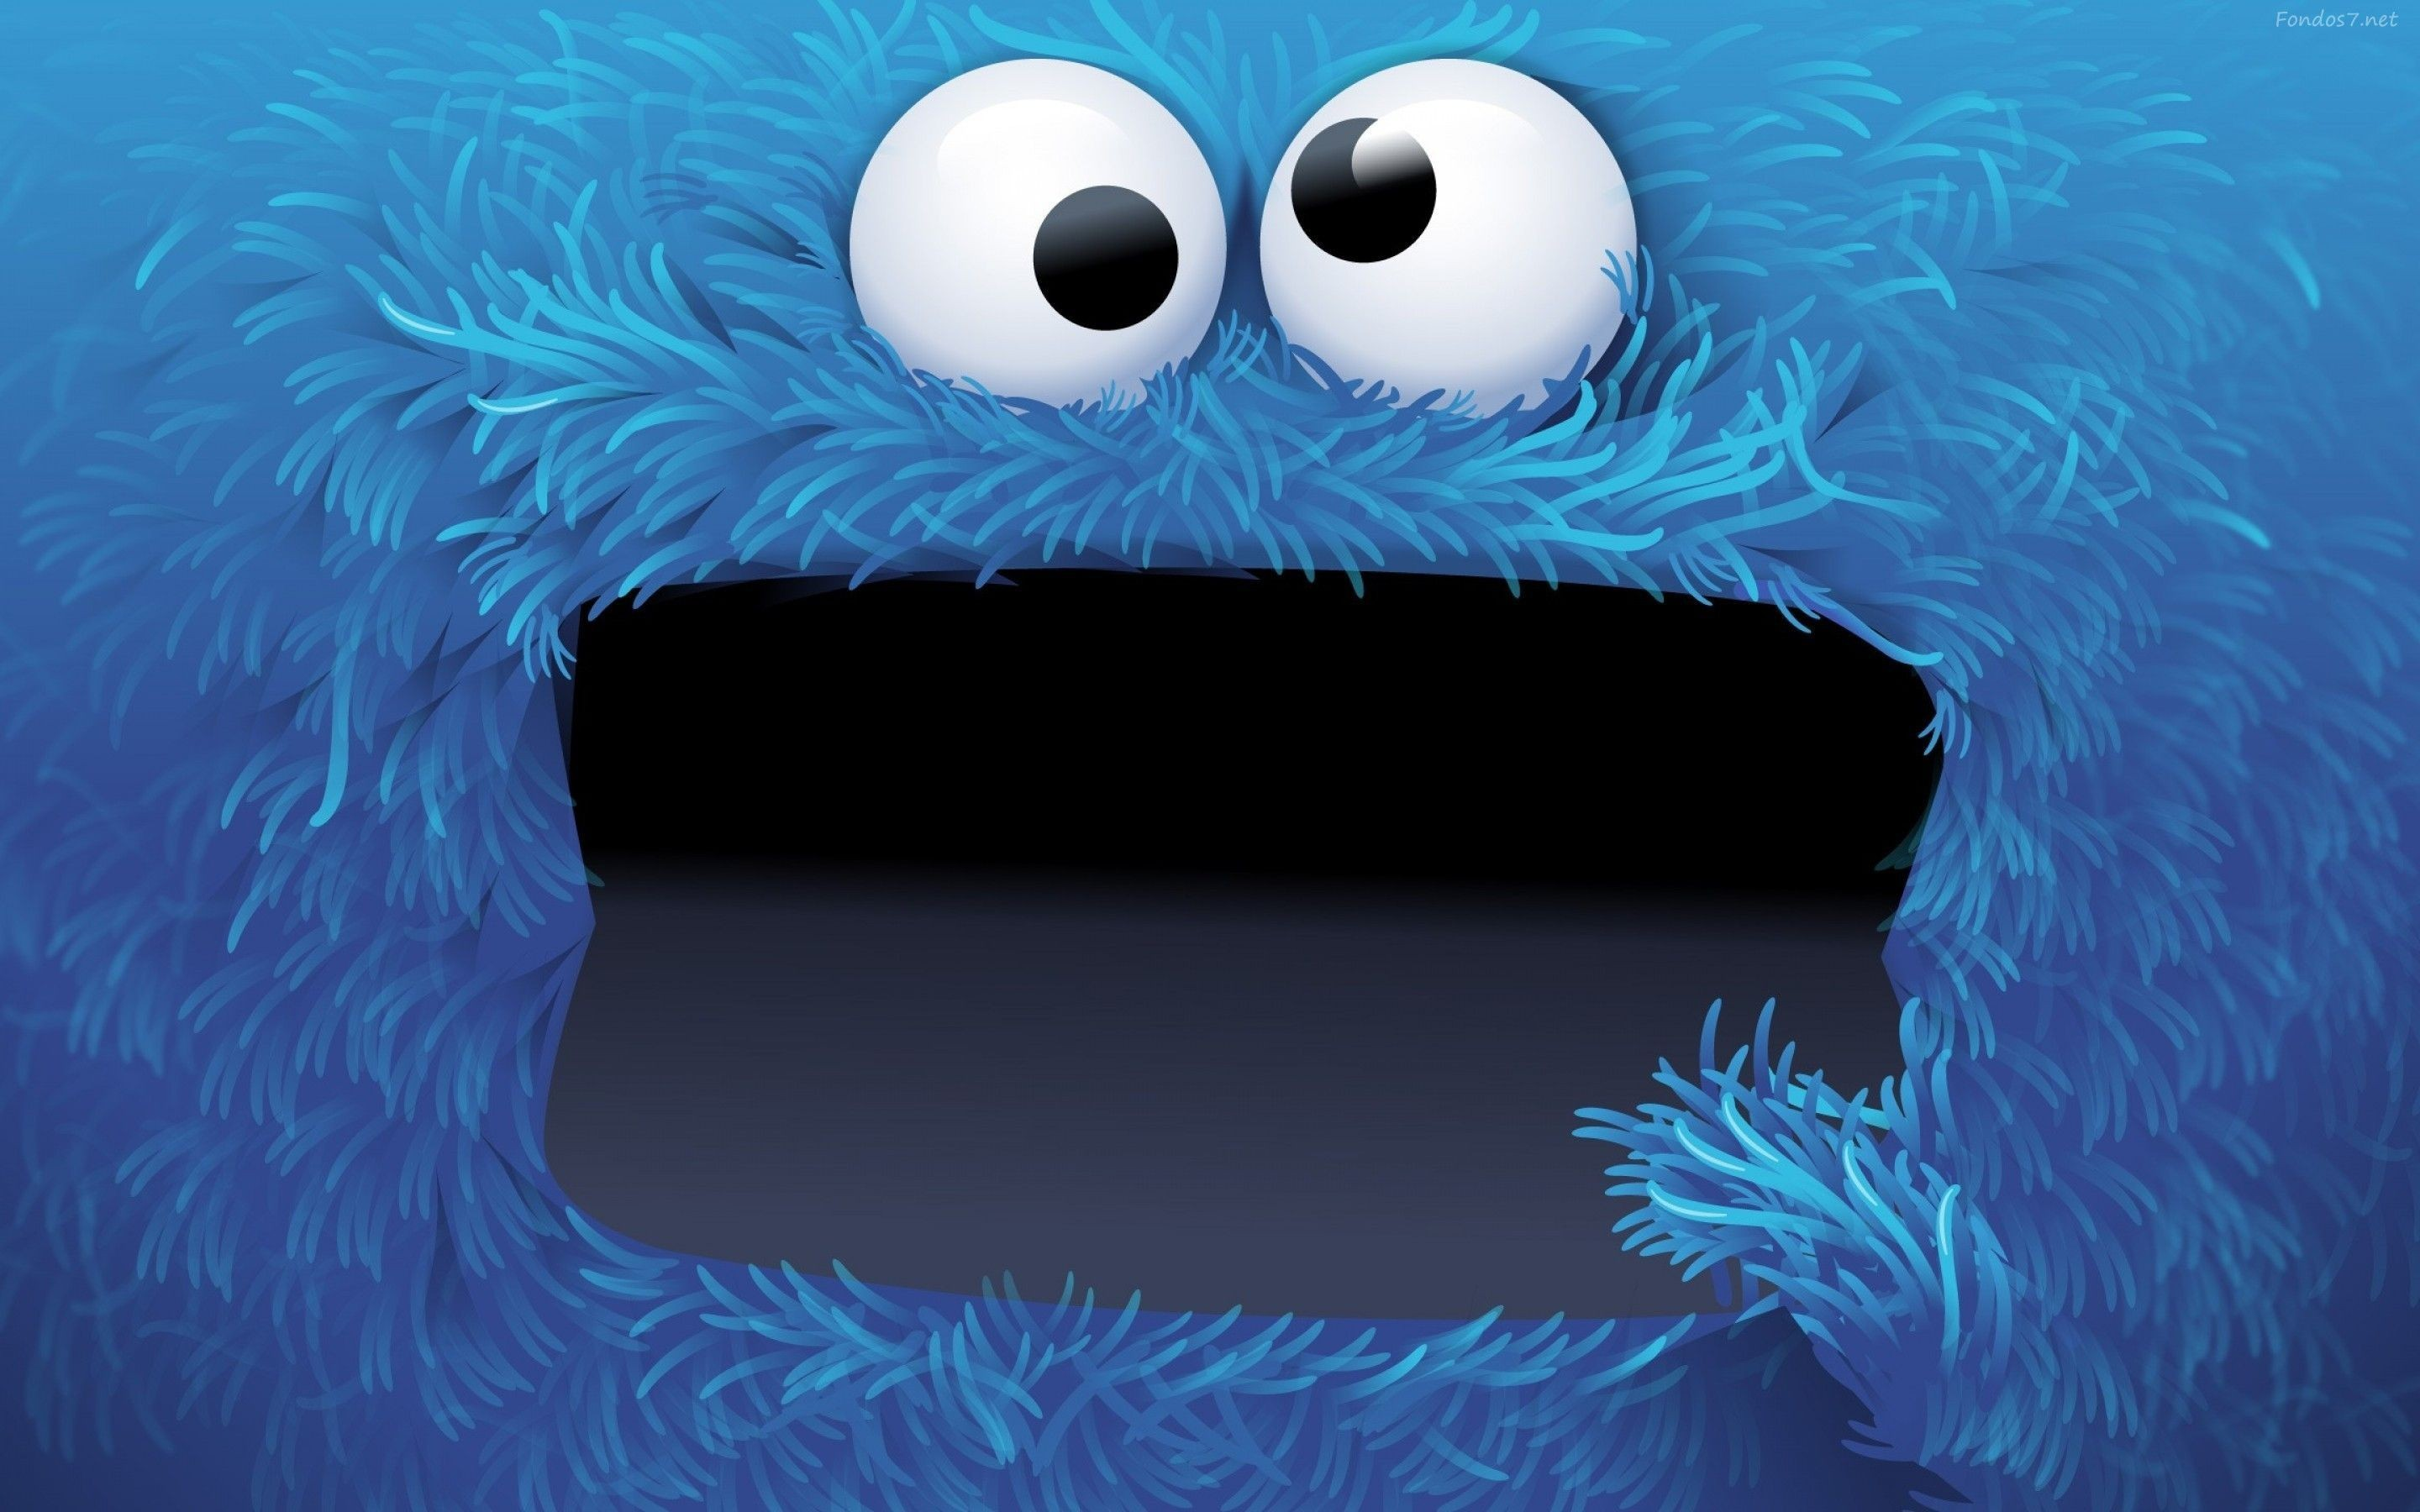 Cookie Monster Wallpaper ① Download Free Stunning Backgrounds For